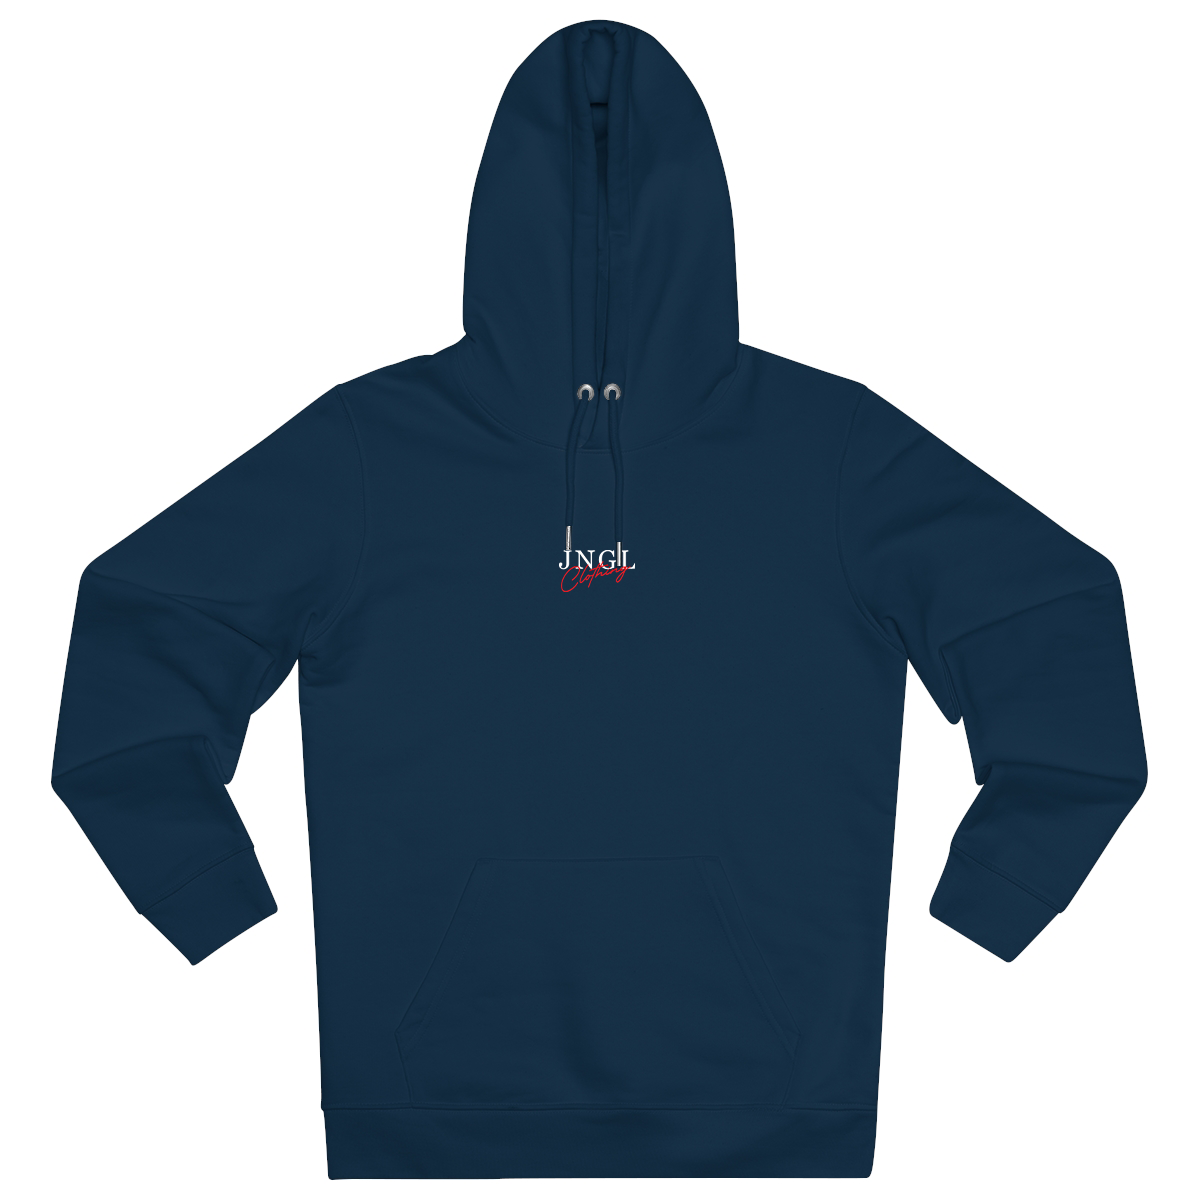 JNGL Clothing - Eye Space hoodie // French Navy - Front (stock)